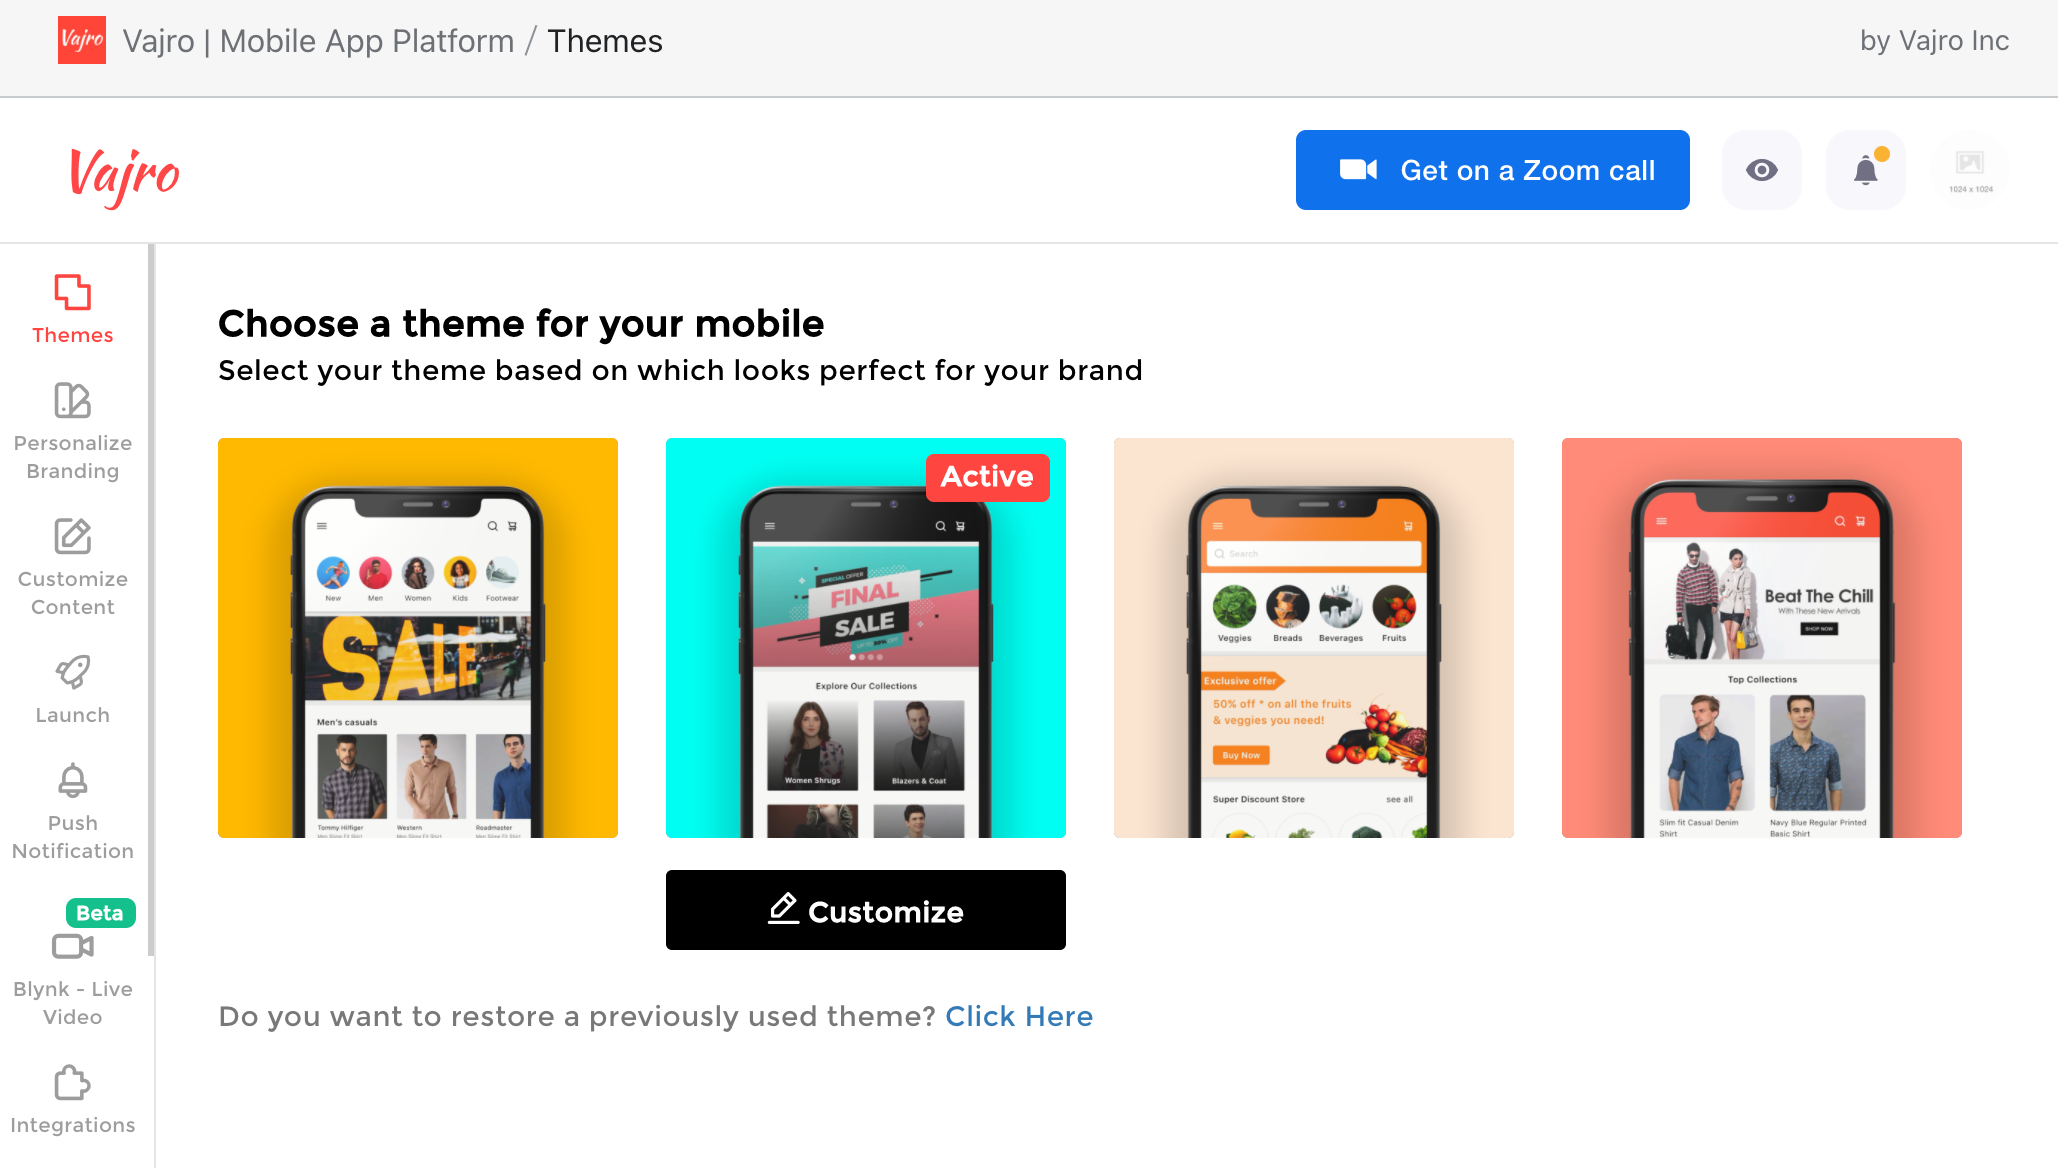 pre-built themes on vajro help users create a shopping app quickly